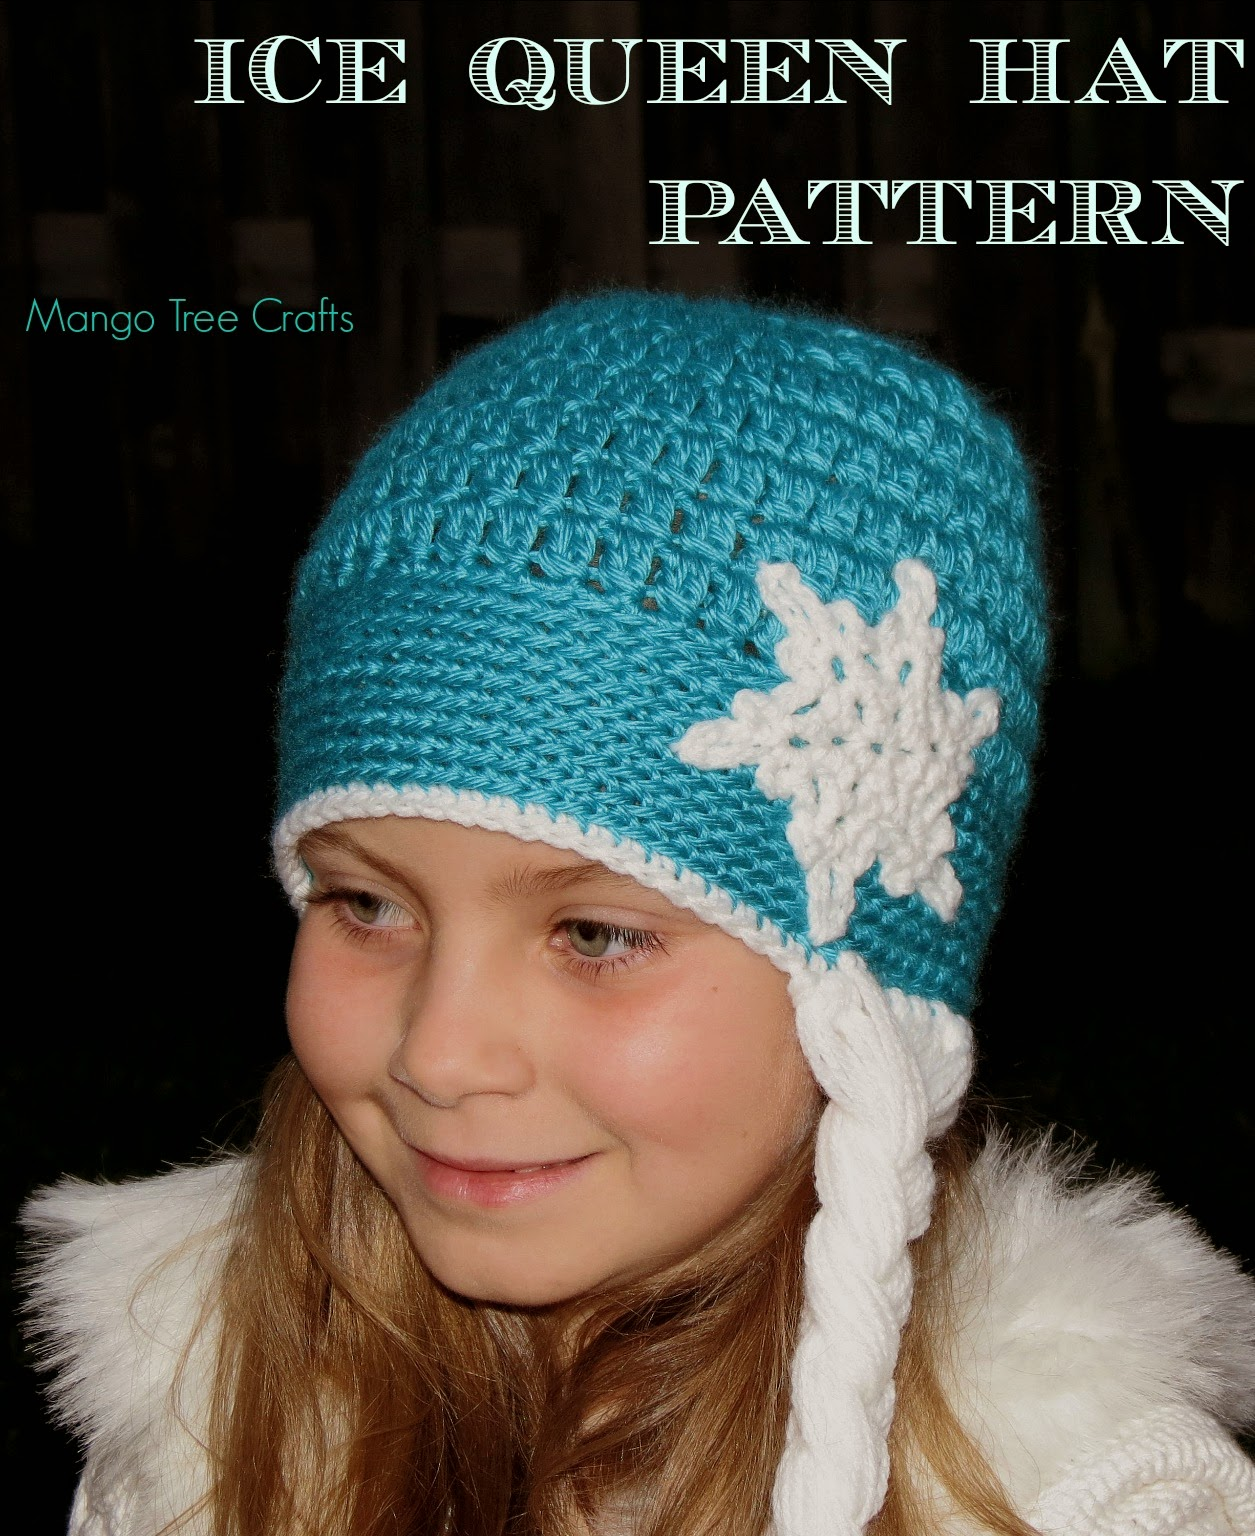 Crochet Hat Patterns Elsa : Mango Tree Crafts: Ice Queen Crochet Hat Pattern